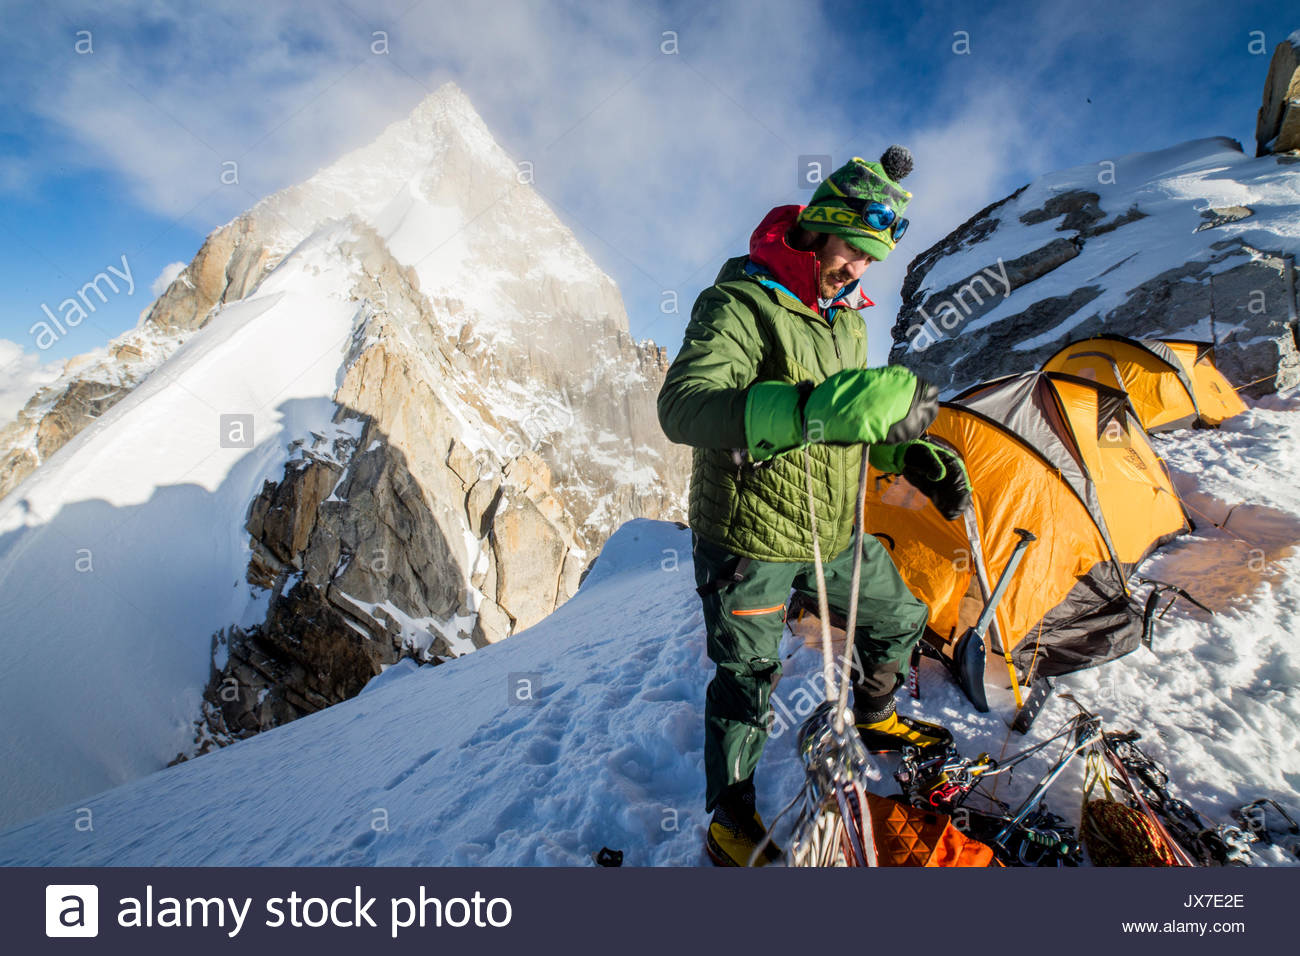 An expedition member double checks his ropes and gear. - Stock Image